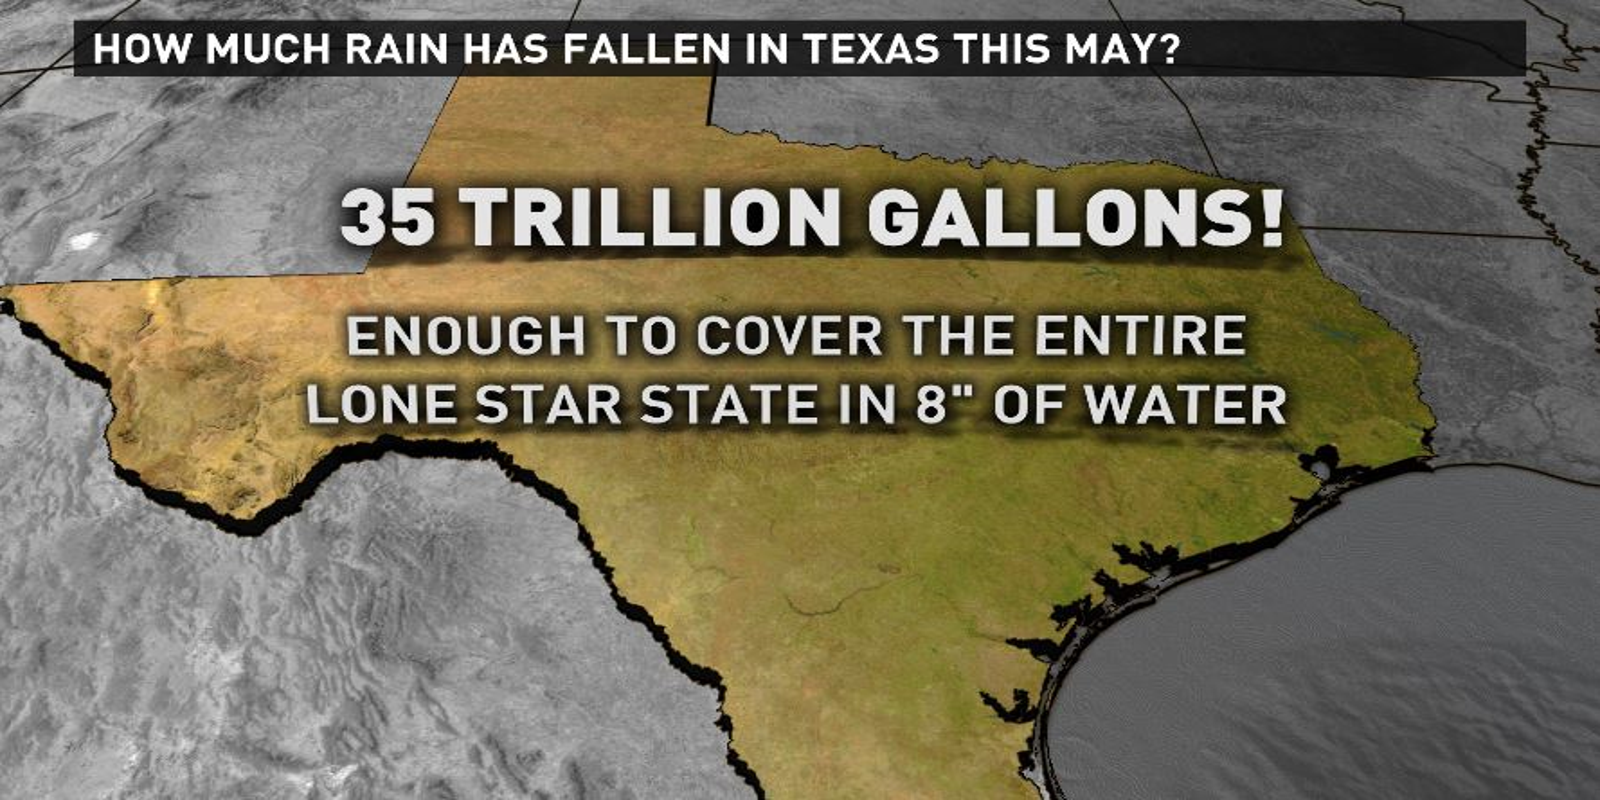 35 trillion gallons of rain in one month